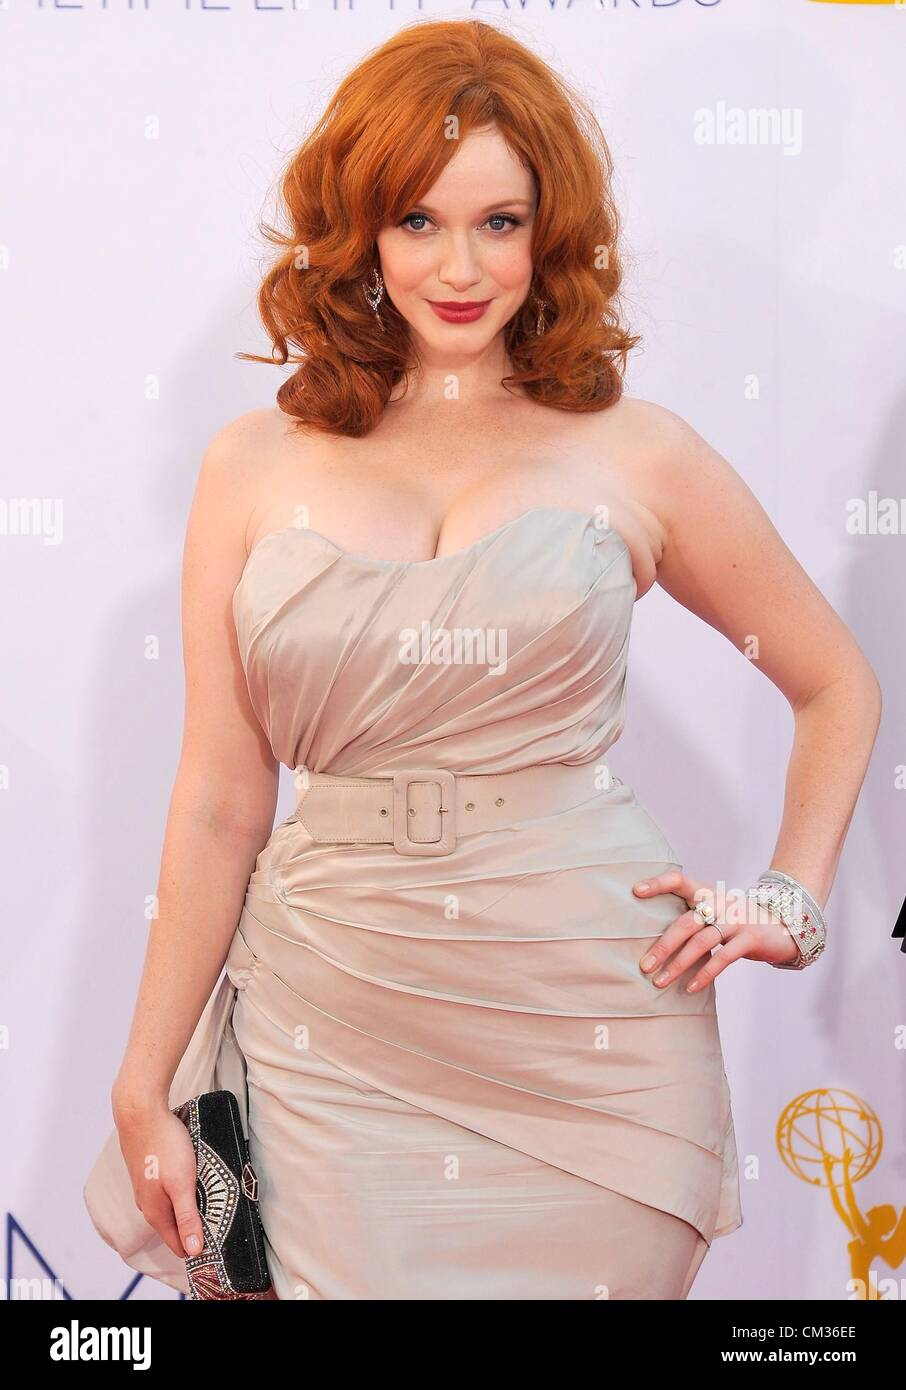 Christina Hendricks arrivals64th Primetime Emmy Awards - ARRIVALS Nokia Theatre L.A LIVE Los Angeles CA September - Stock Image